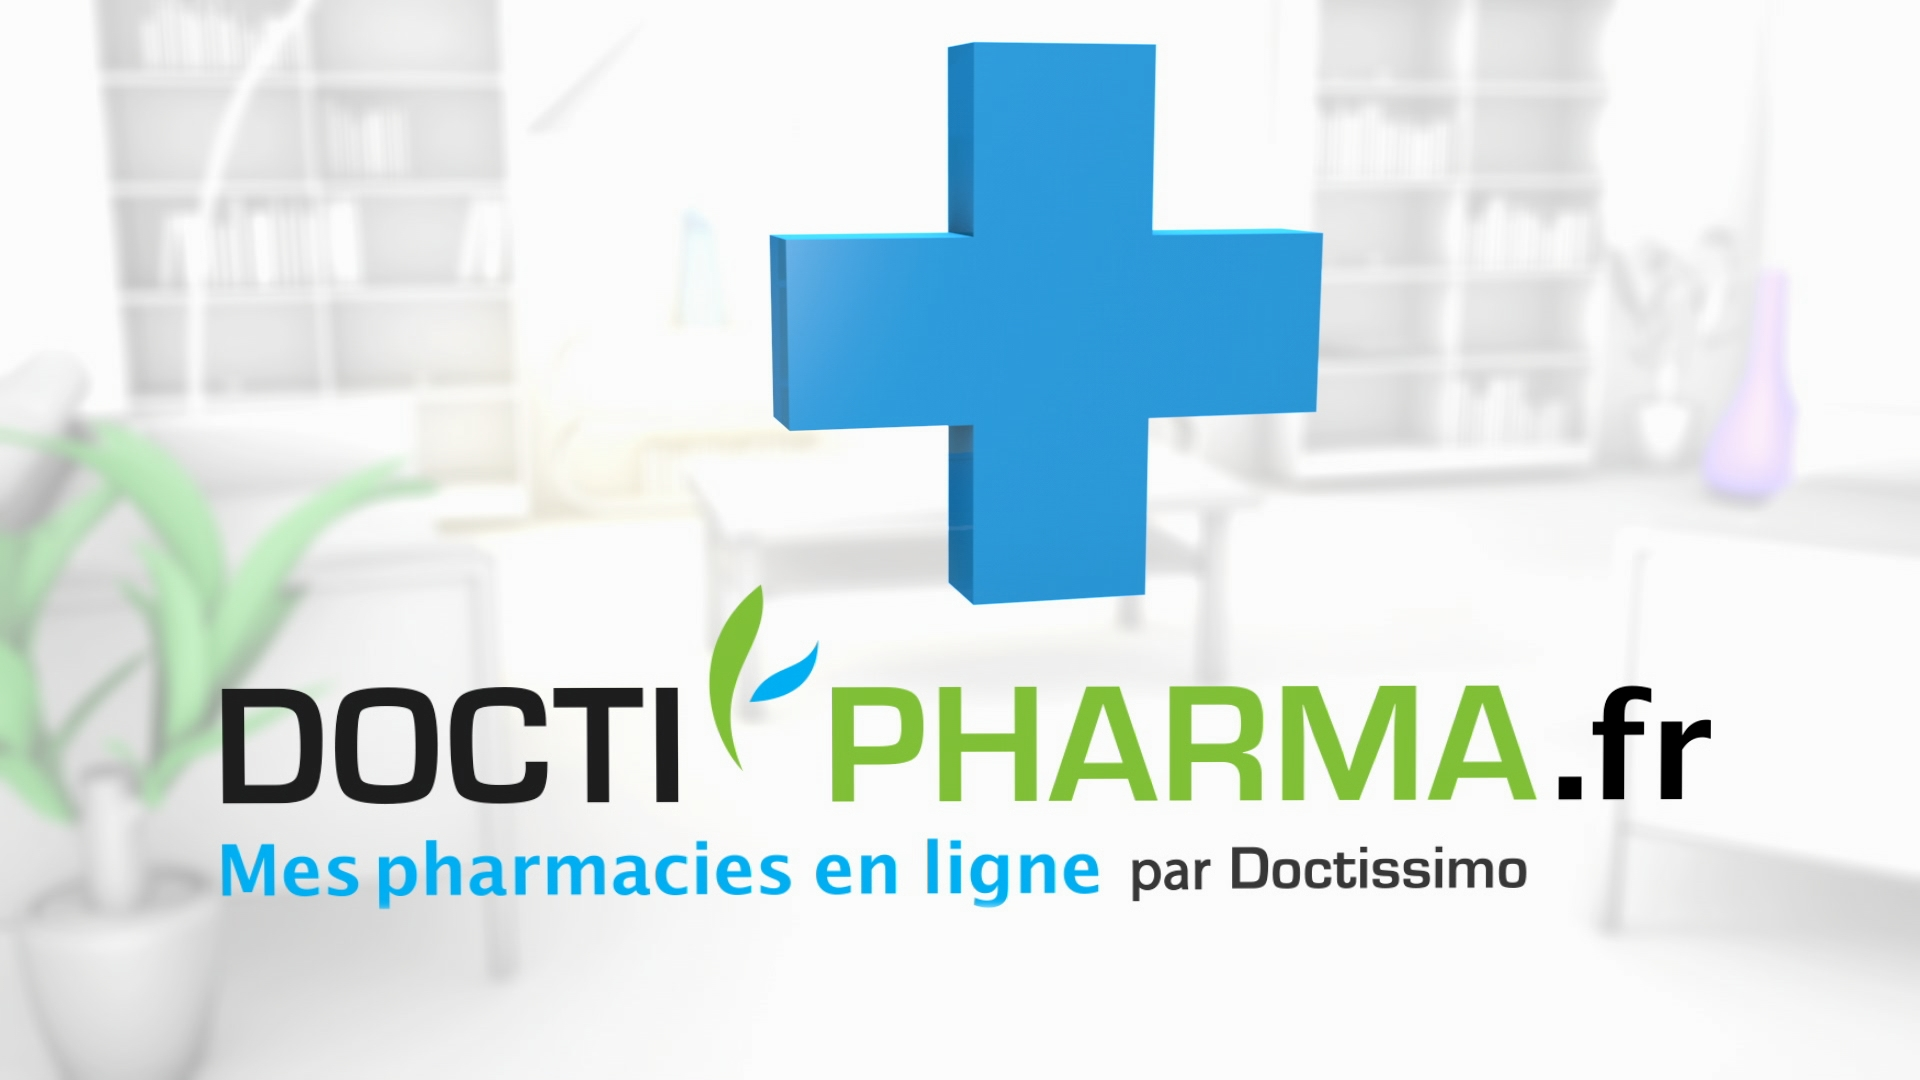 Billboard Doctipharma